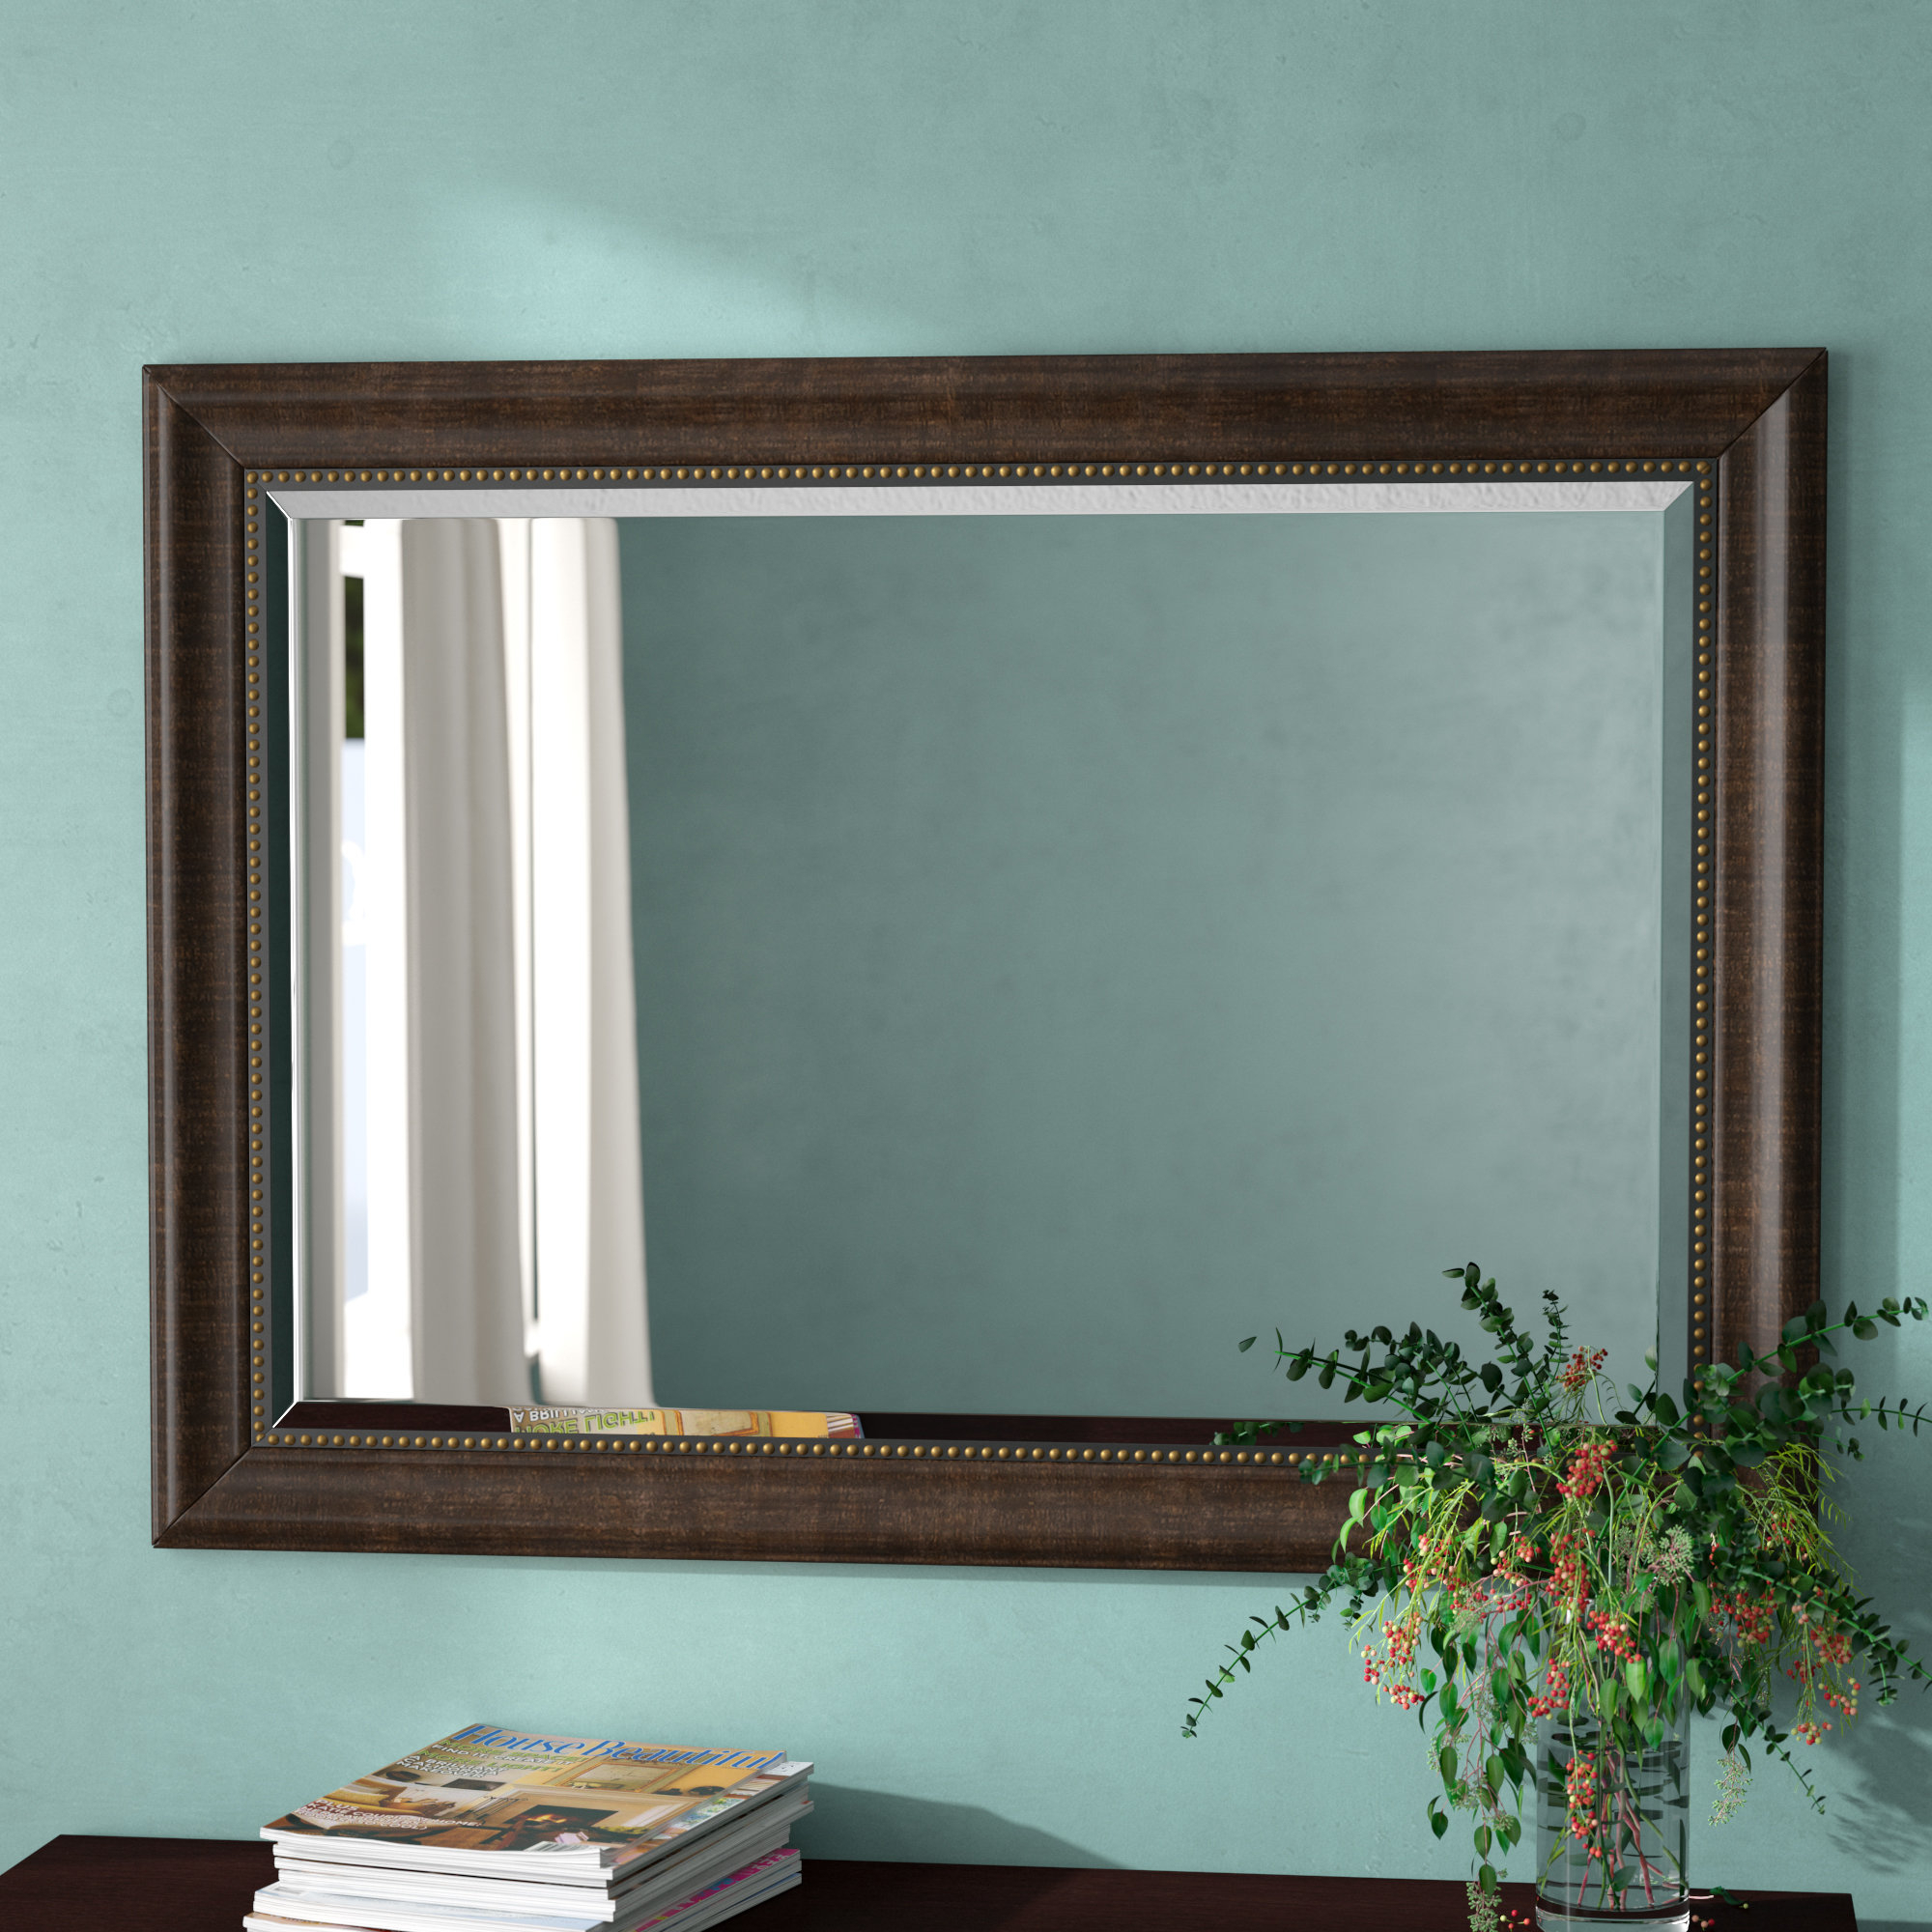 Beaded Mirror | Wayfair With Regard To Lake Park Beveled Beaded Accent Wall Mirrors (View 6 of 30)